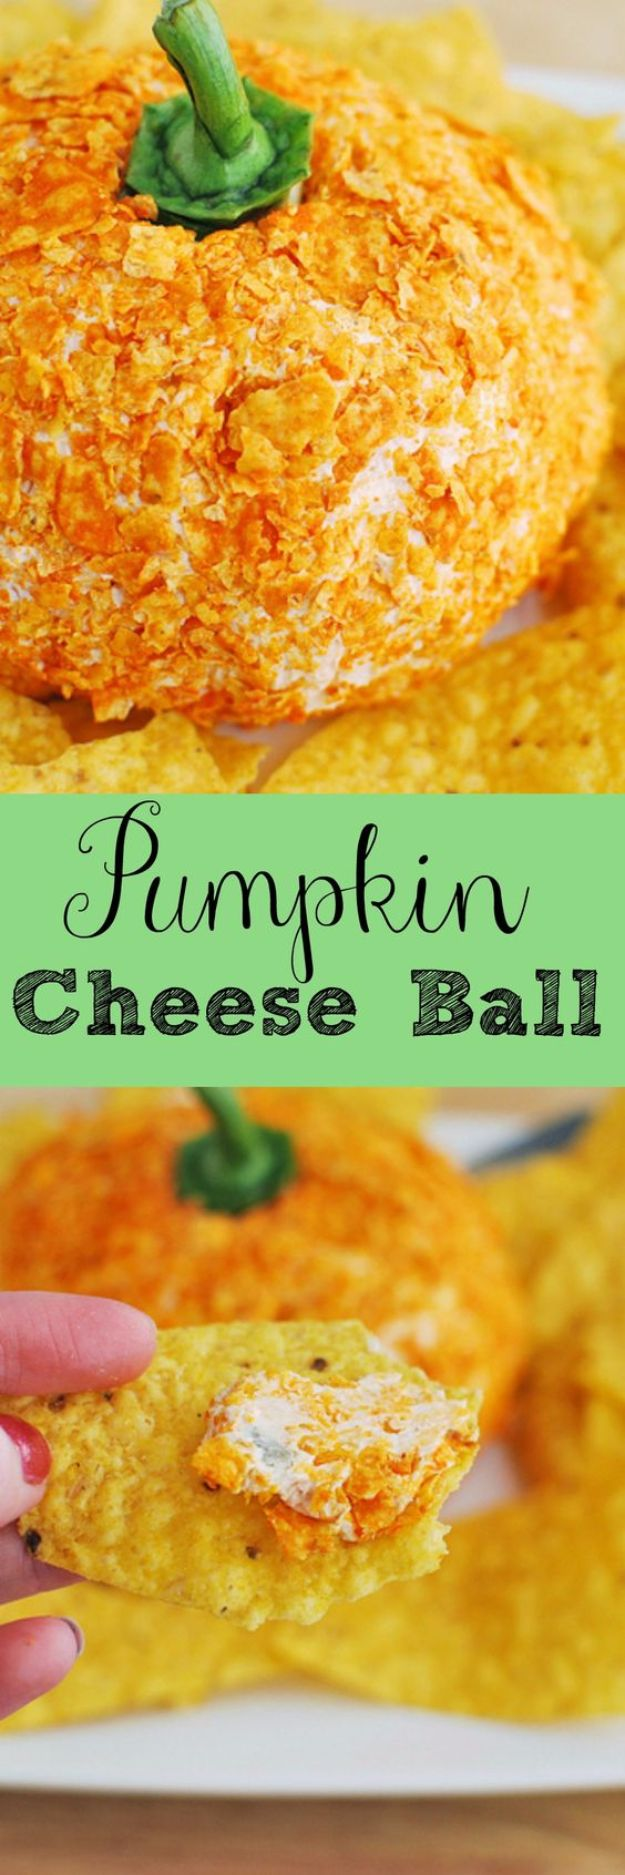 DIY Recipes Made With Doritos - Pumpkin Cheese Ball - Best Dorito Recipes for Casserole, Taco Salad, Chicken Dinners, Beef Casseroles, Nachos, Easy Cool Ranch Meals and Ideas for Dips, Snacks and Kids Recipe Tutorials - Quick Lunch Ideas and Recipes for Parties